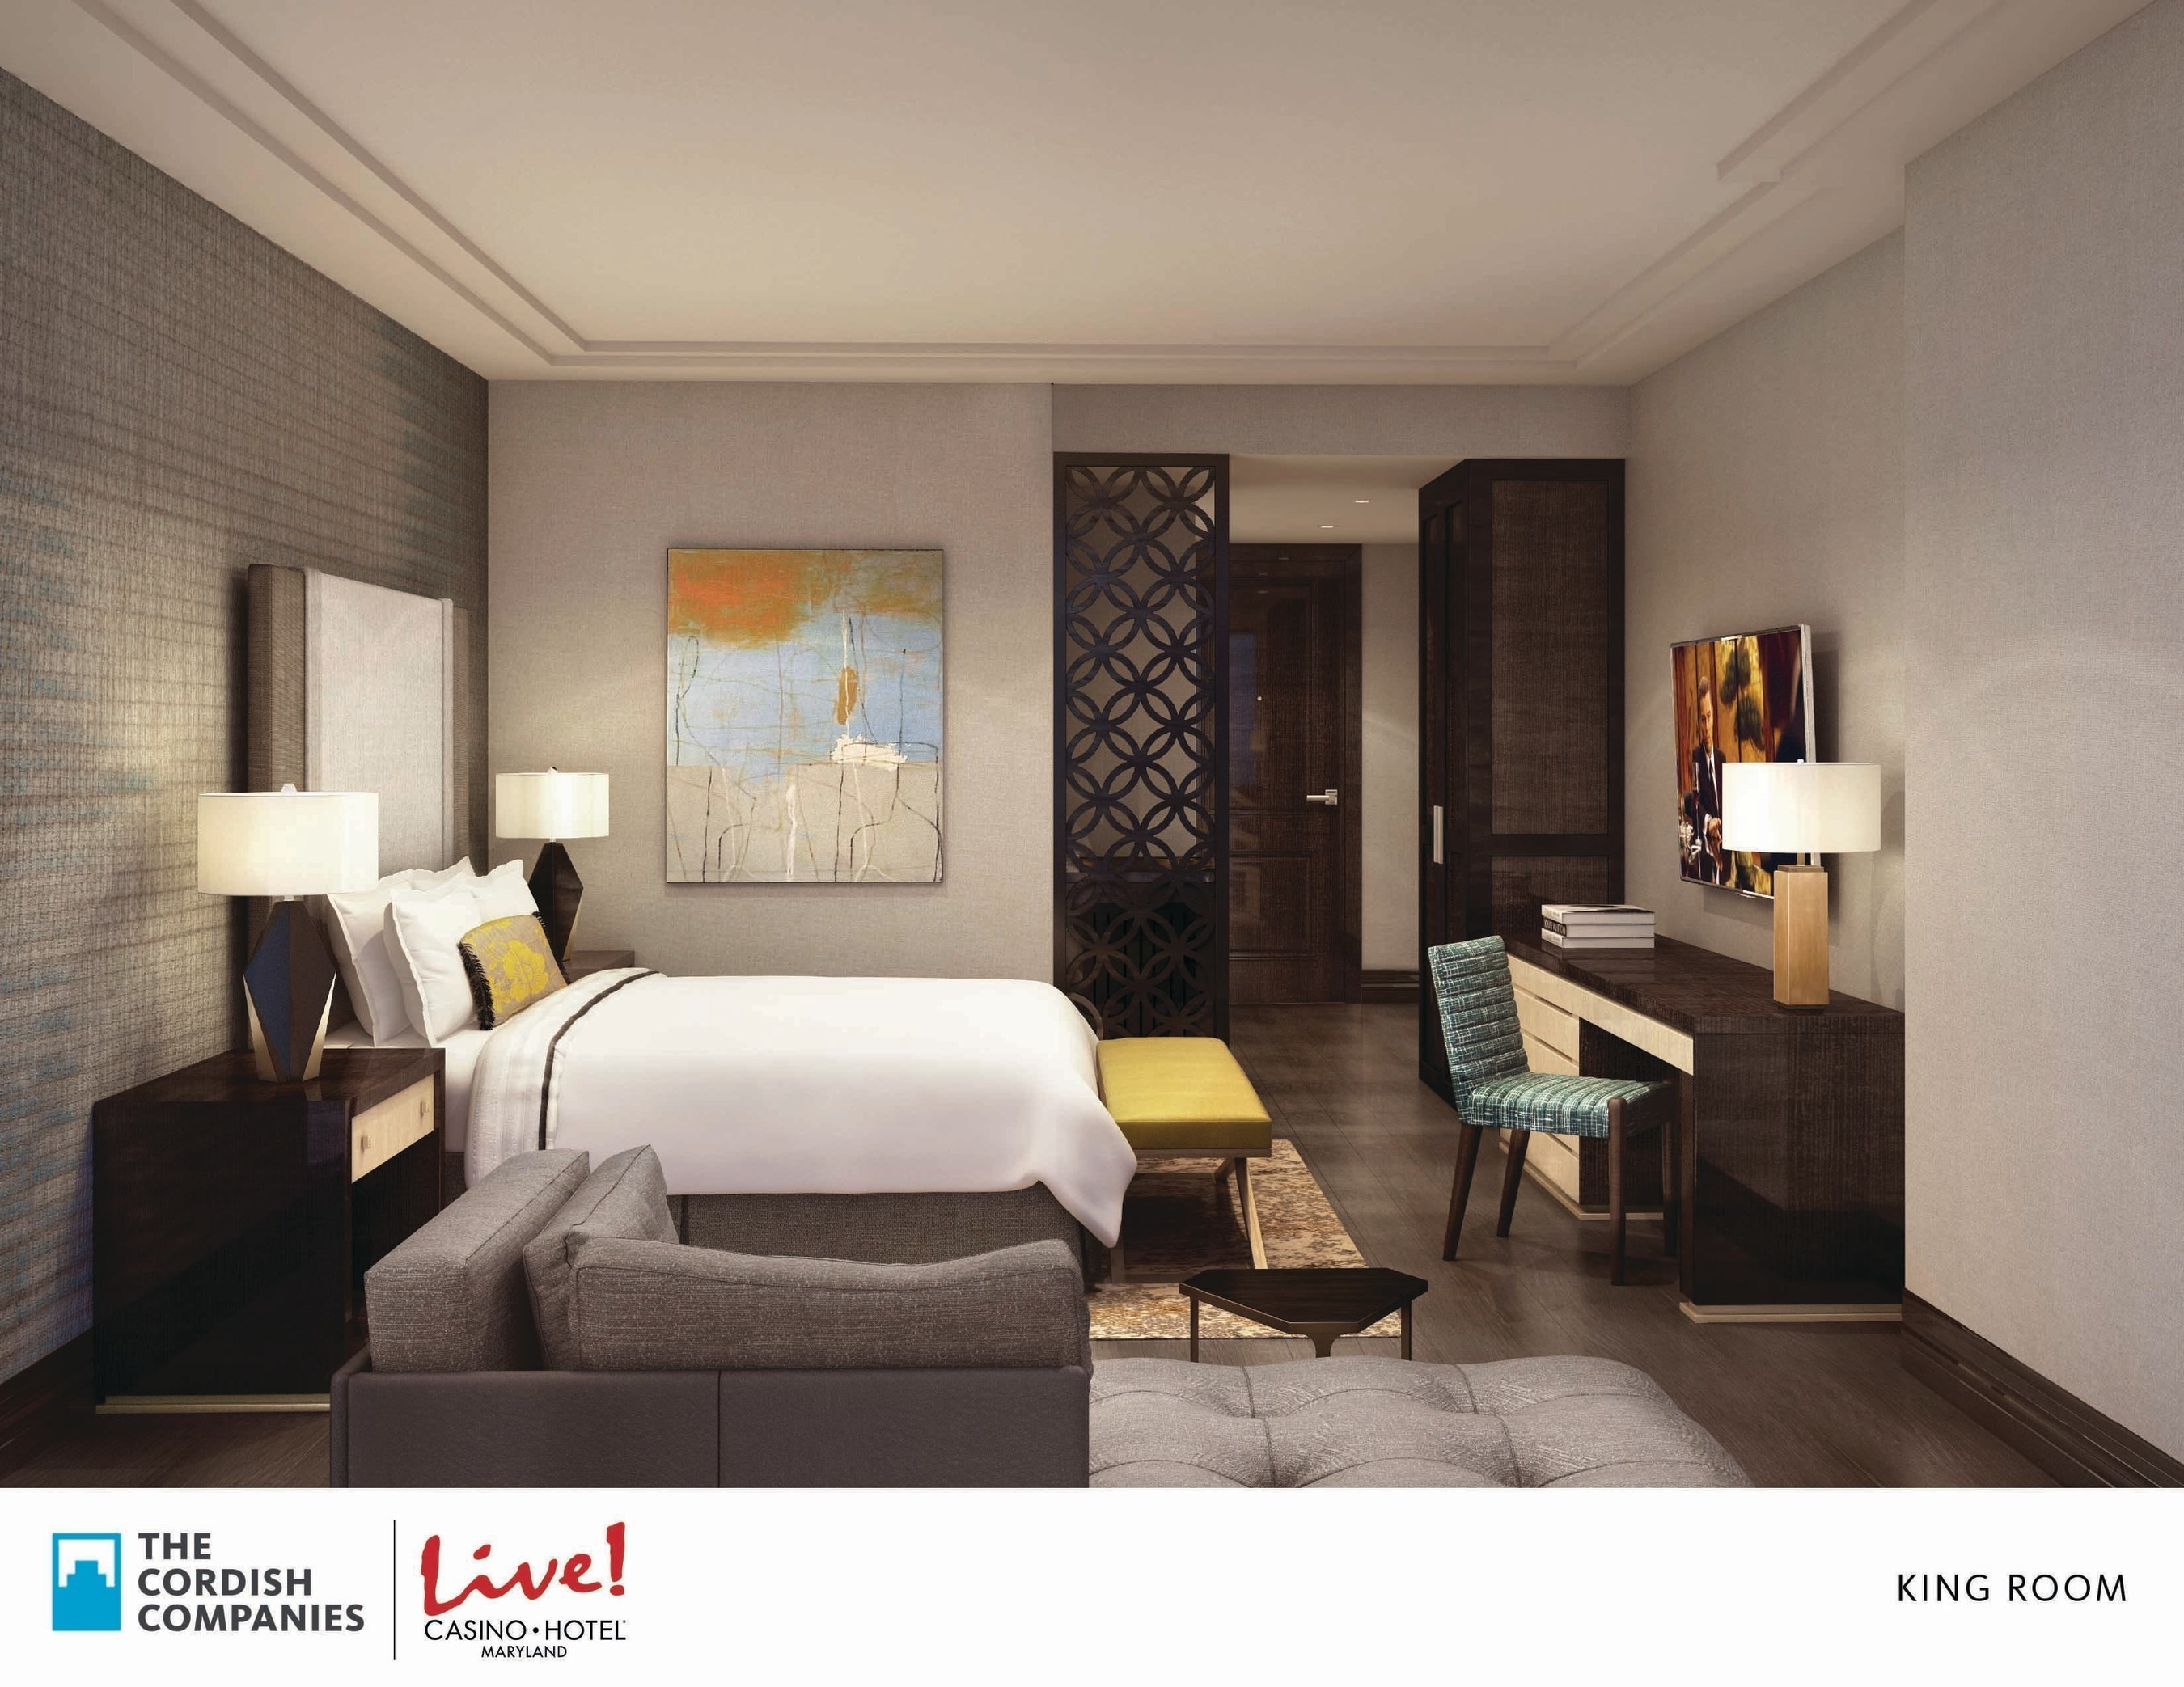 The Cordish Companies Unveil Vision for Flagship LIVE! HOTEL - a new $200 million luxury hotel, spa and event center at Maryland Live! Casino in Hanover, Maryland. The new project will add hundreds of permanent new jobs and expand amenities at the region's top gaming and entertainment destination.